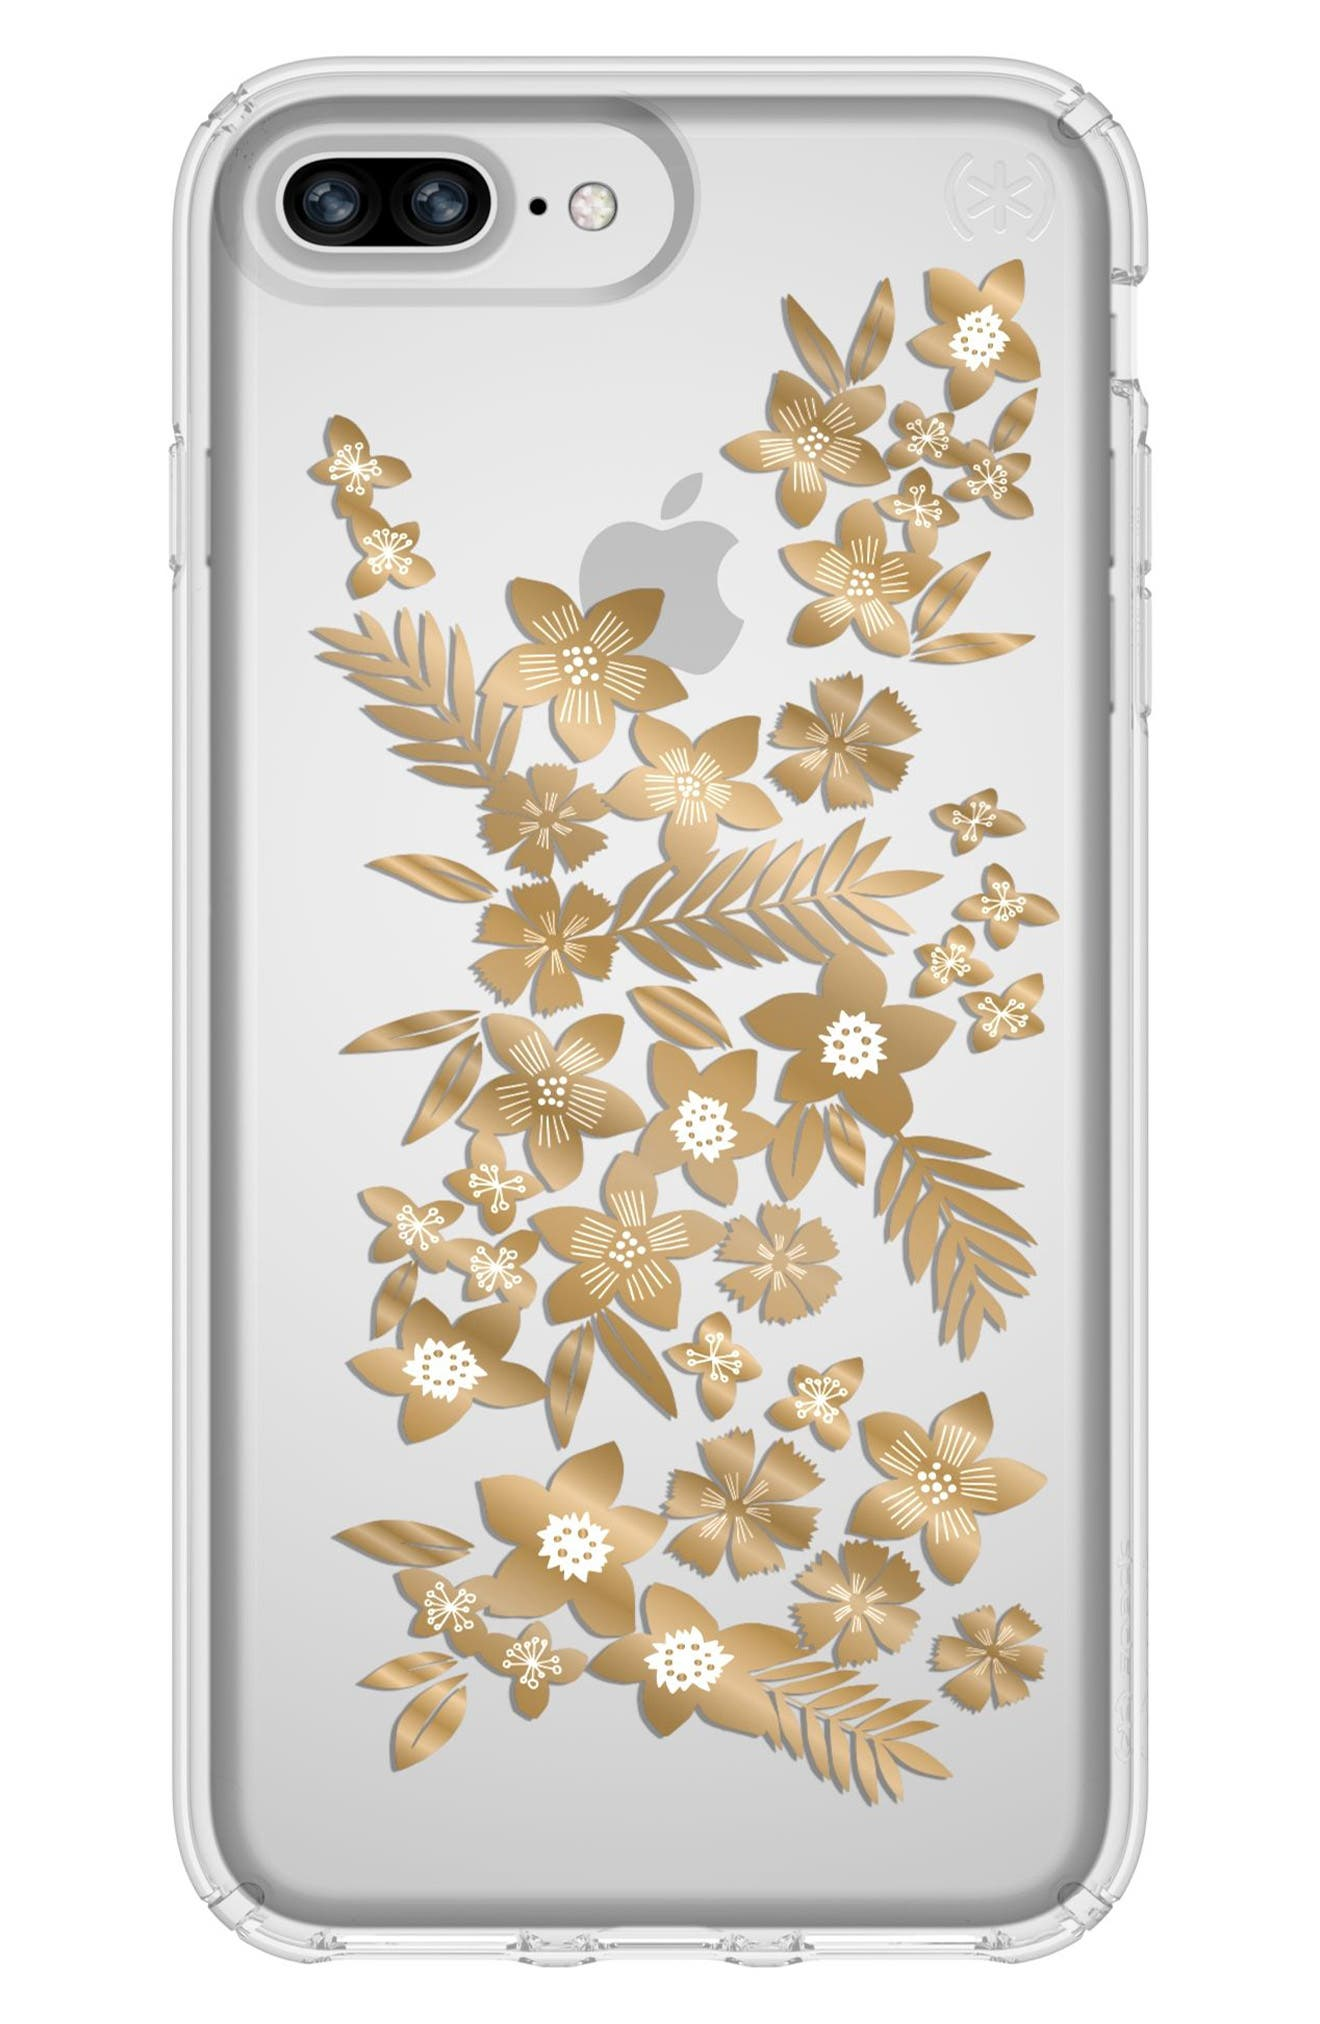 Speck Floral iPhone 6 Plus/6s Plus/7 Plus/8 Plus Case